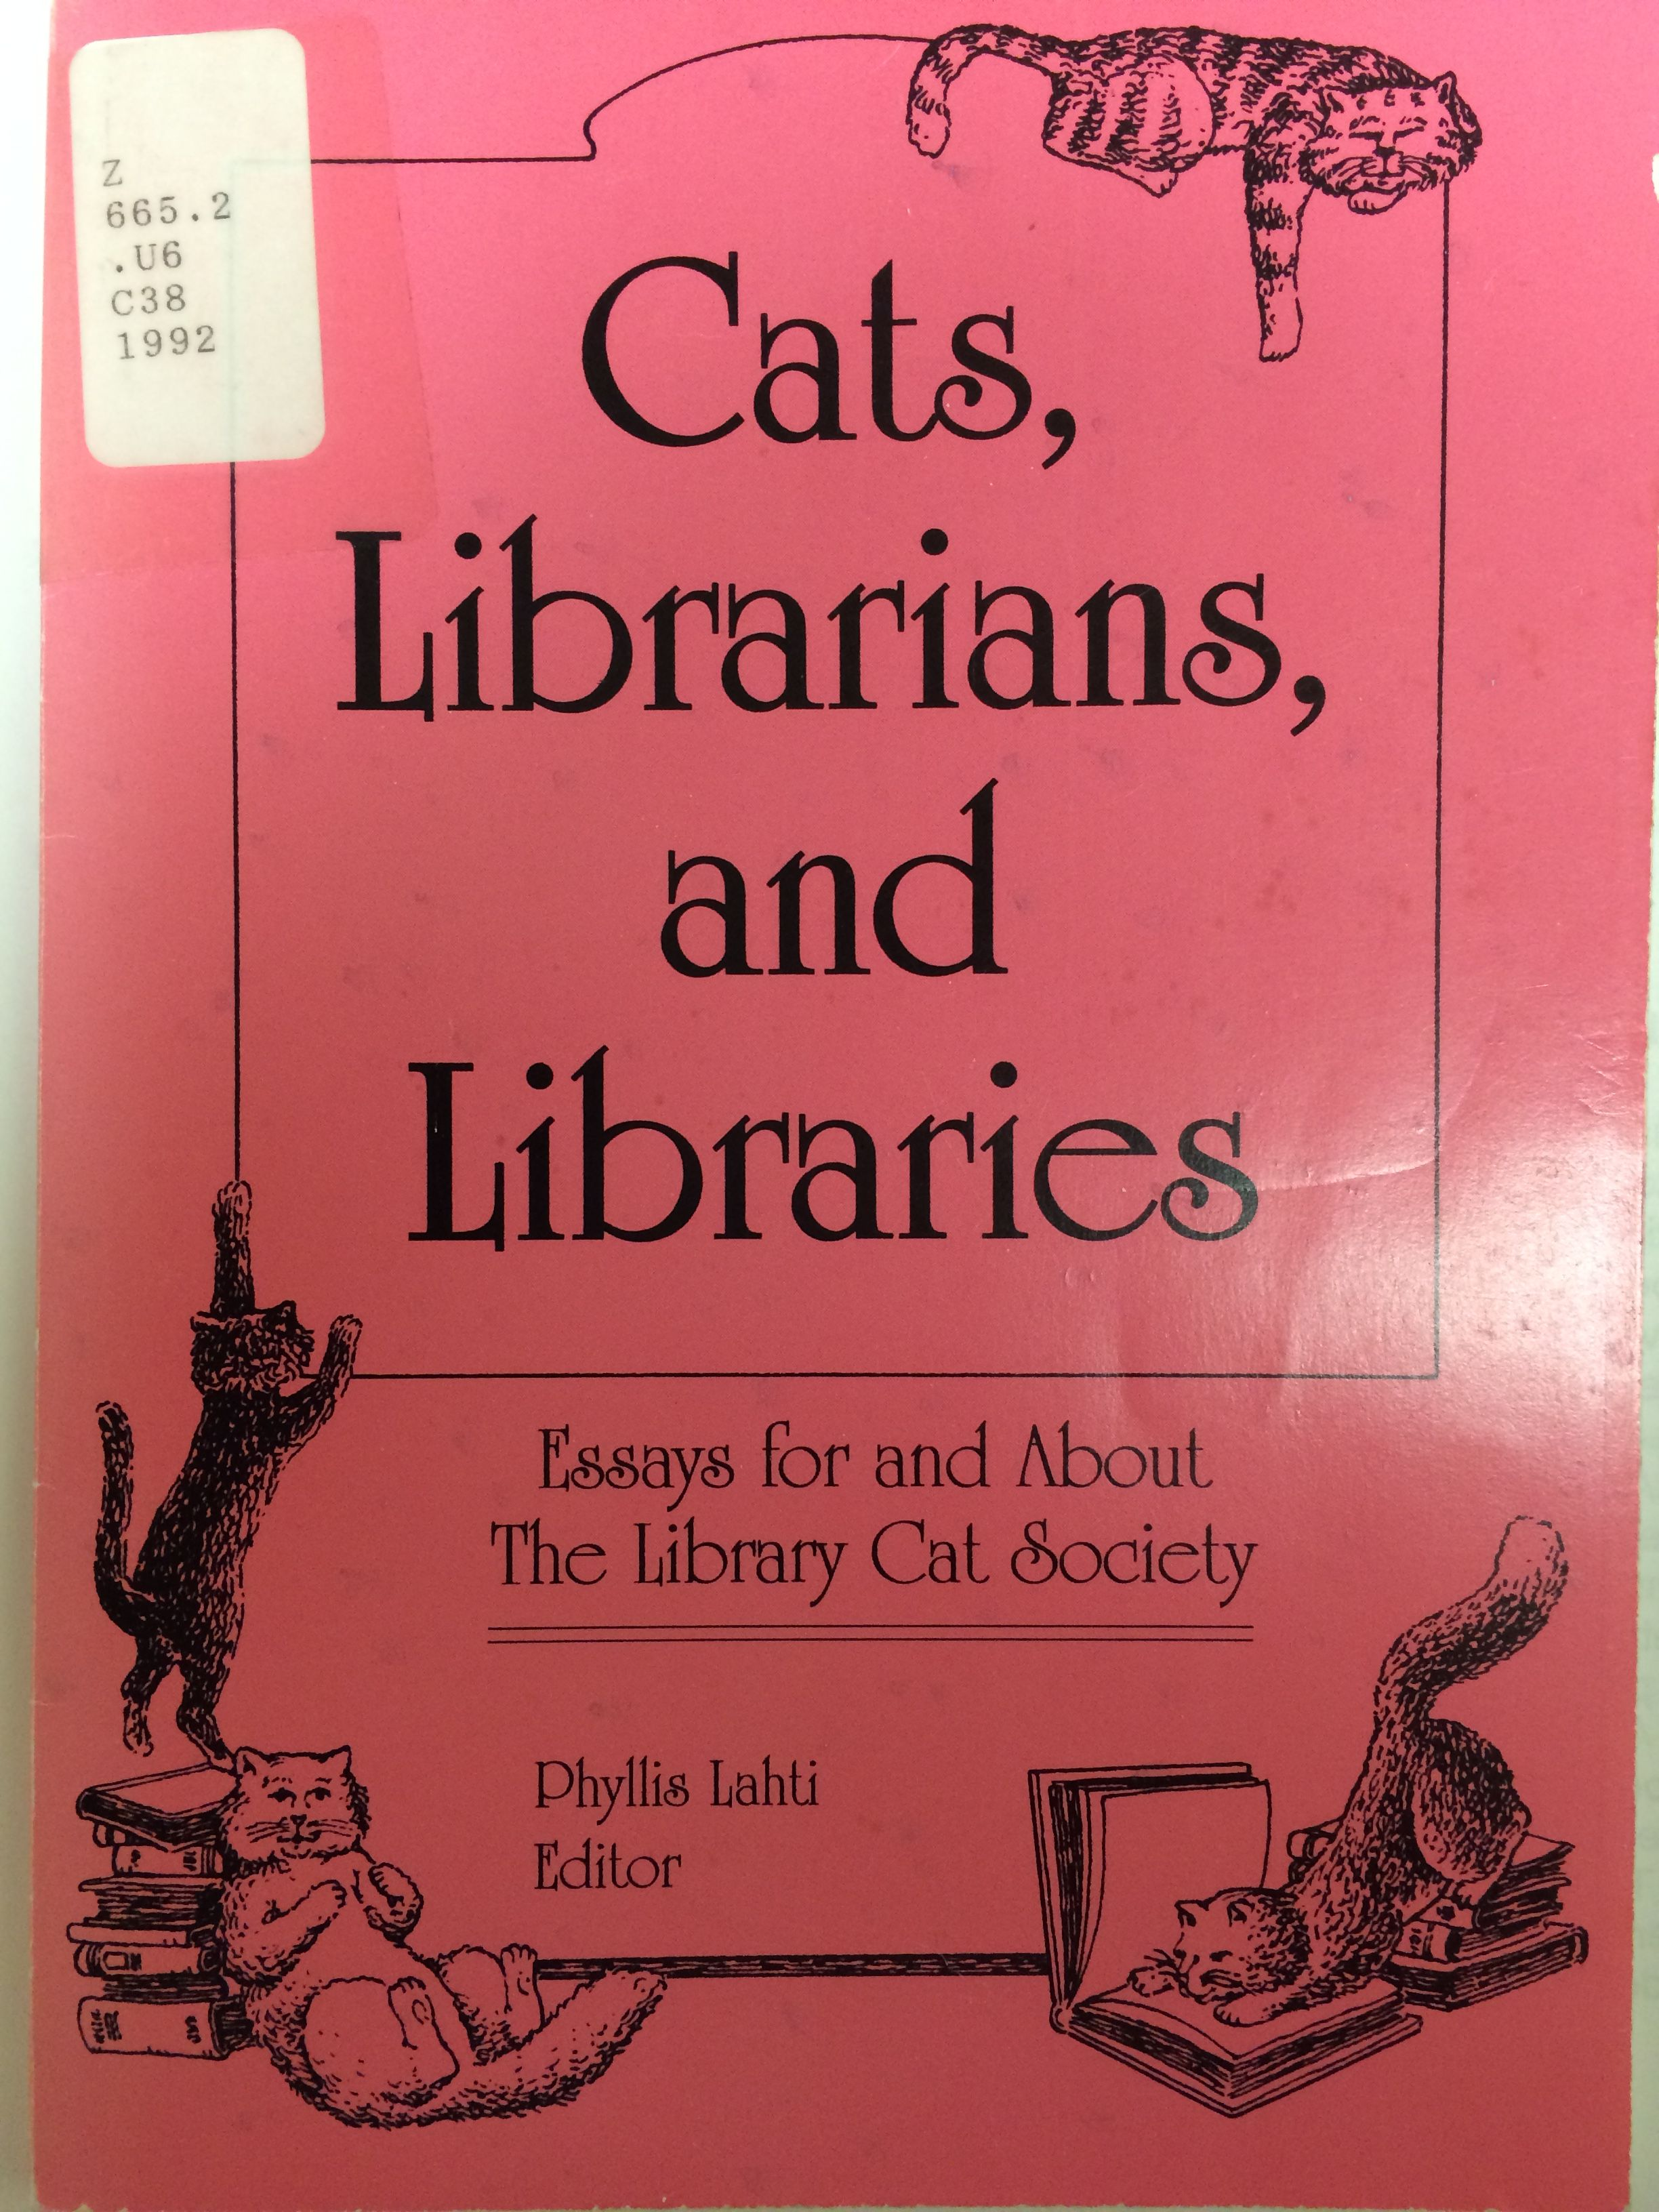 Science Fair Essay Cats Librarians And Libraries Essays For And About The Library Cat  Society Haworth  Essay On Health Care Reform also Compare And Contrast Essay Examples For High School Cats Librarians And Libraries Essays For And About The Library  Health Care Essays